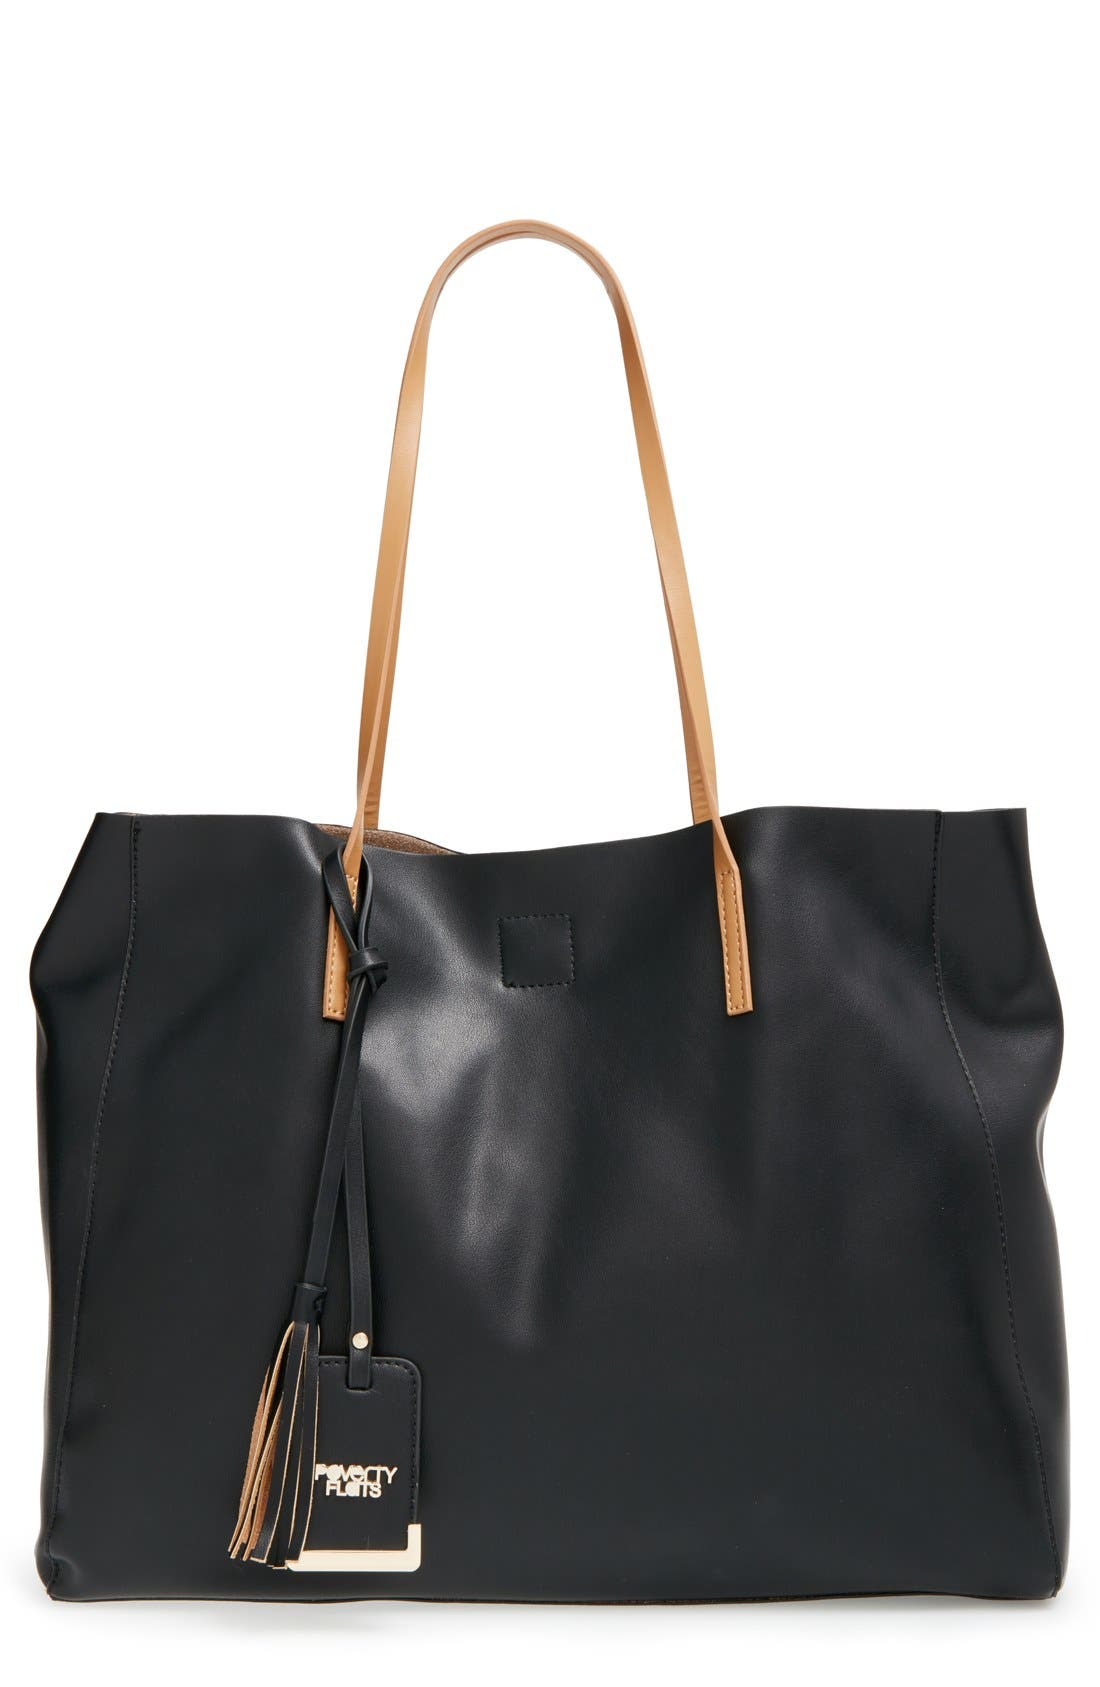 Main Image - POVERTY FLATS by rian 'Colorful' Faux Leather Shopper